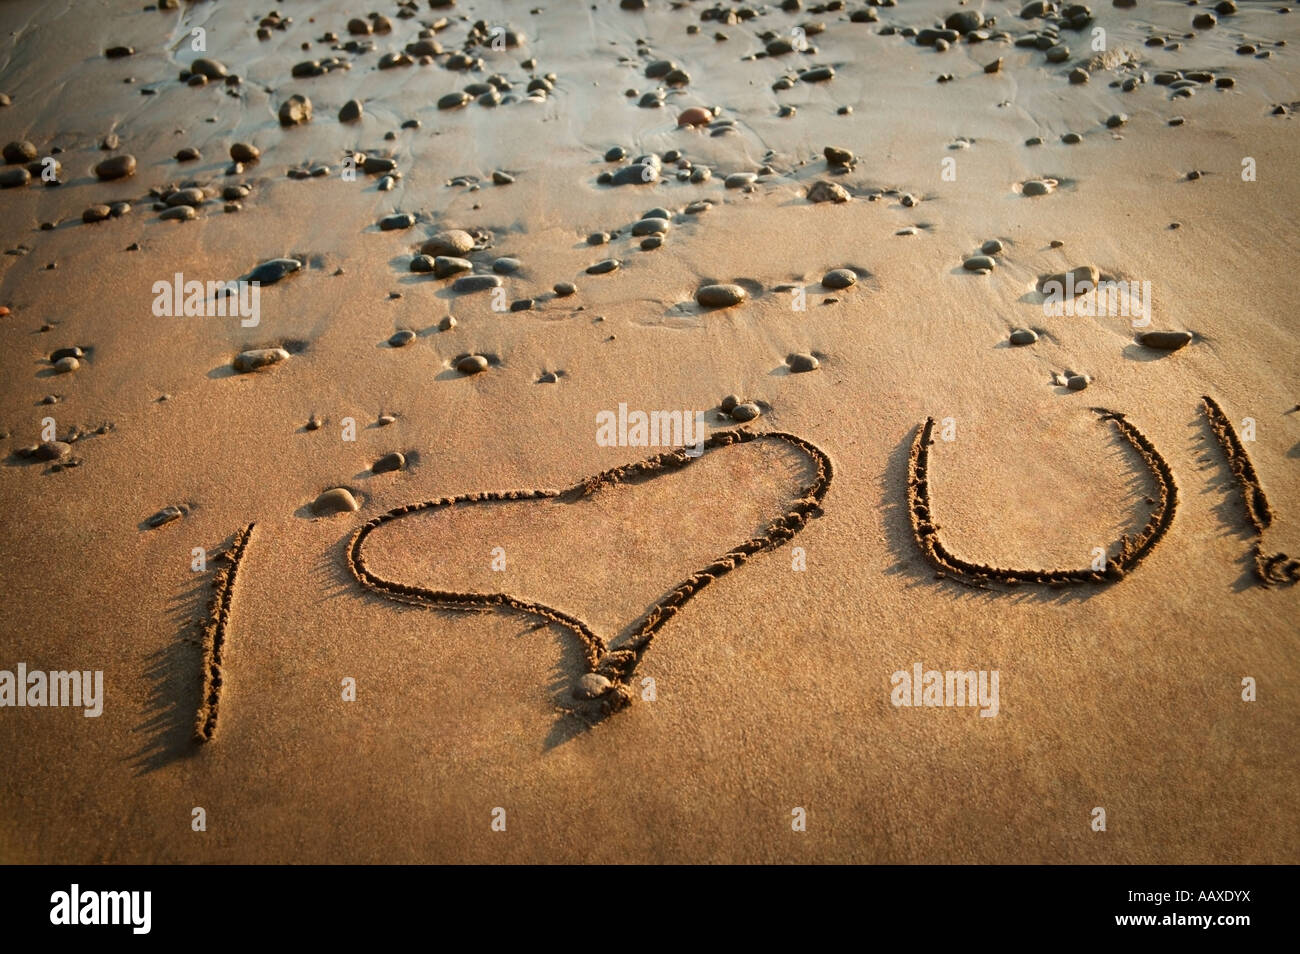 Writing in the sand: I love you - Stock Image